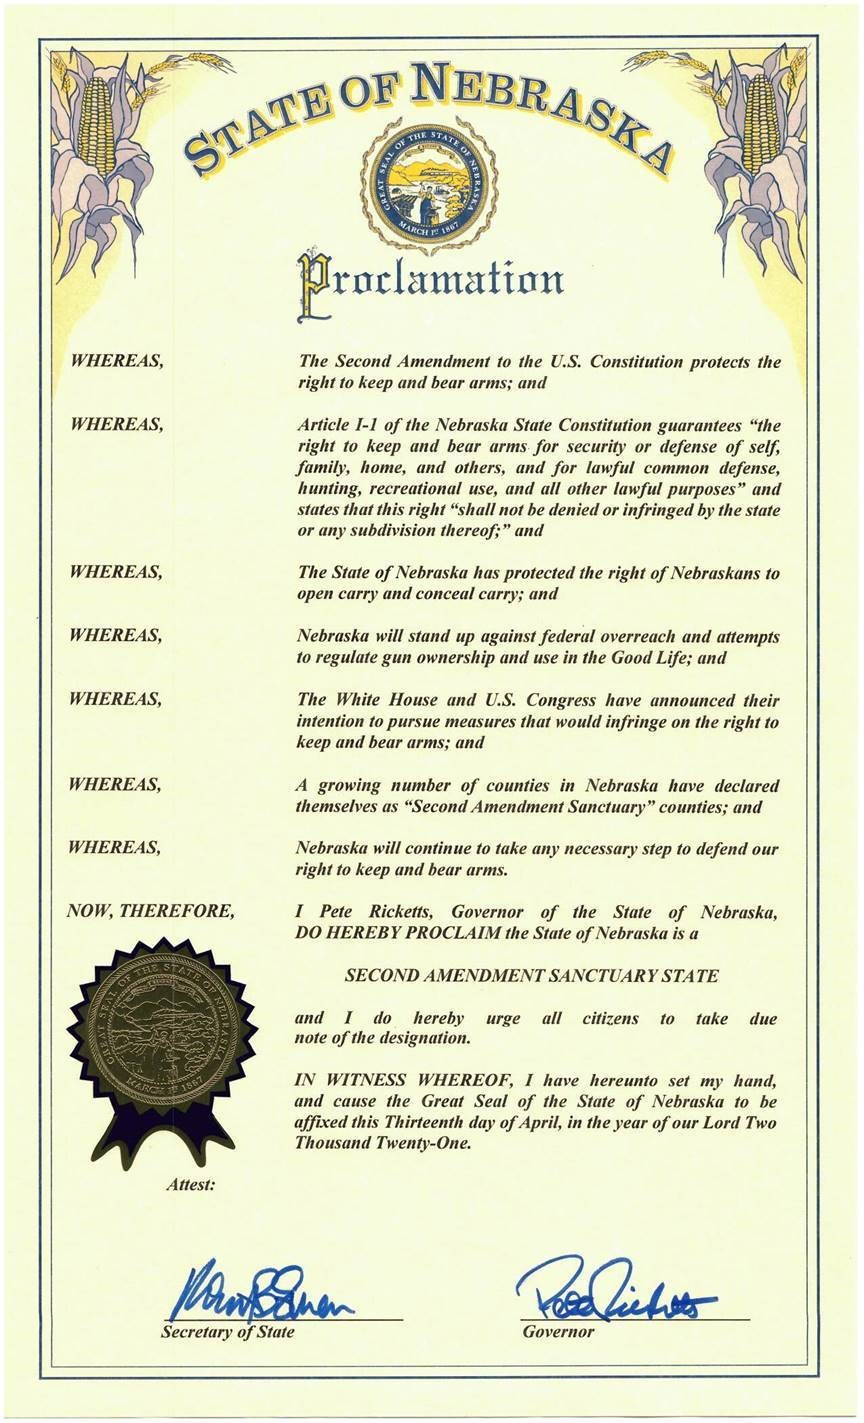 Nebraska Second Amendment Sanctuary State Proclamation